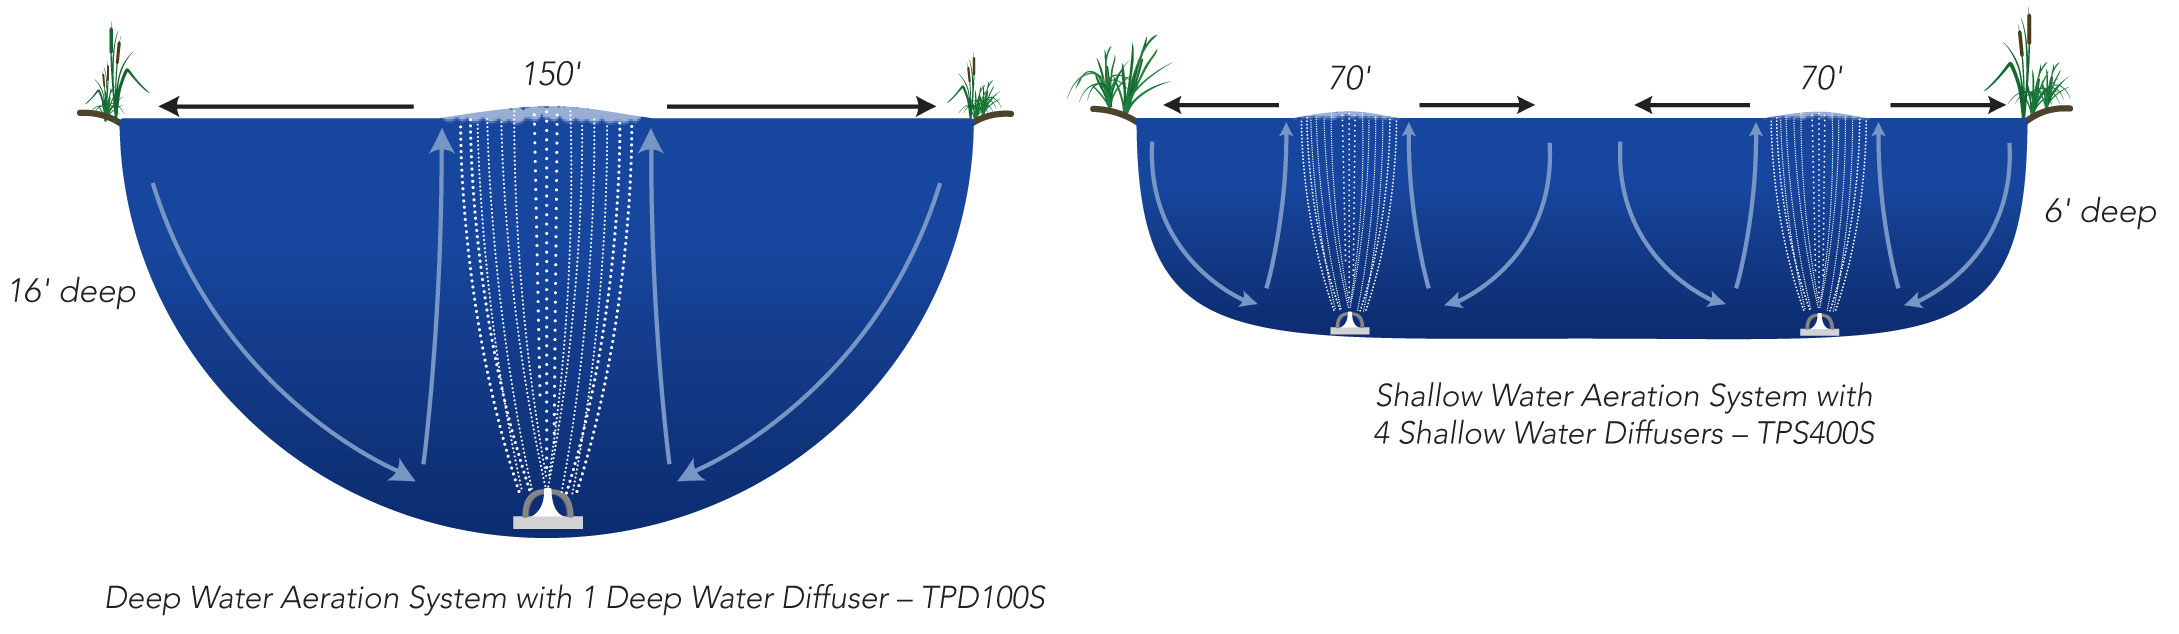 aeration-size-comparison